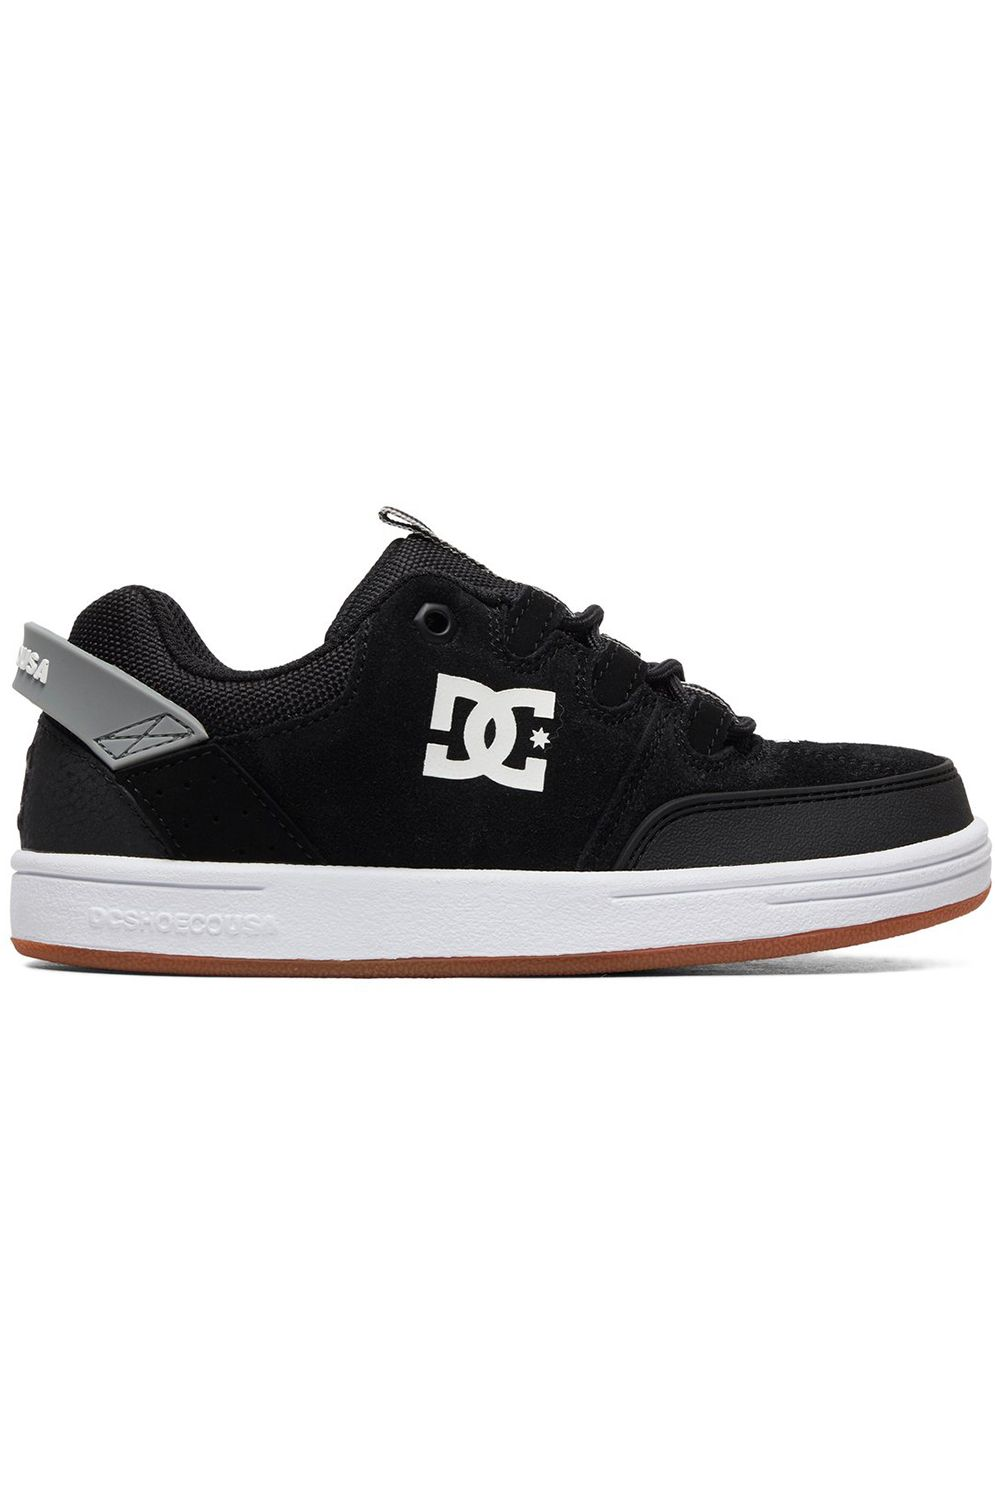 DC Shoes Shoes SYNTAX Black/Grey